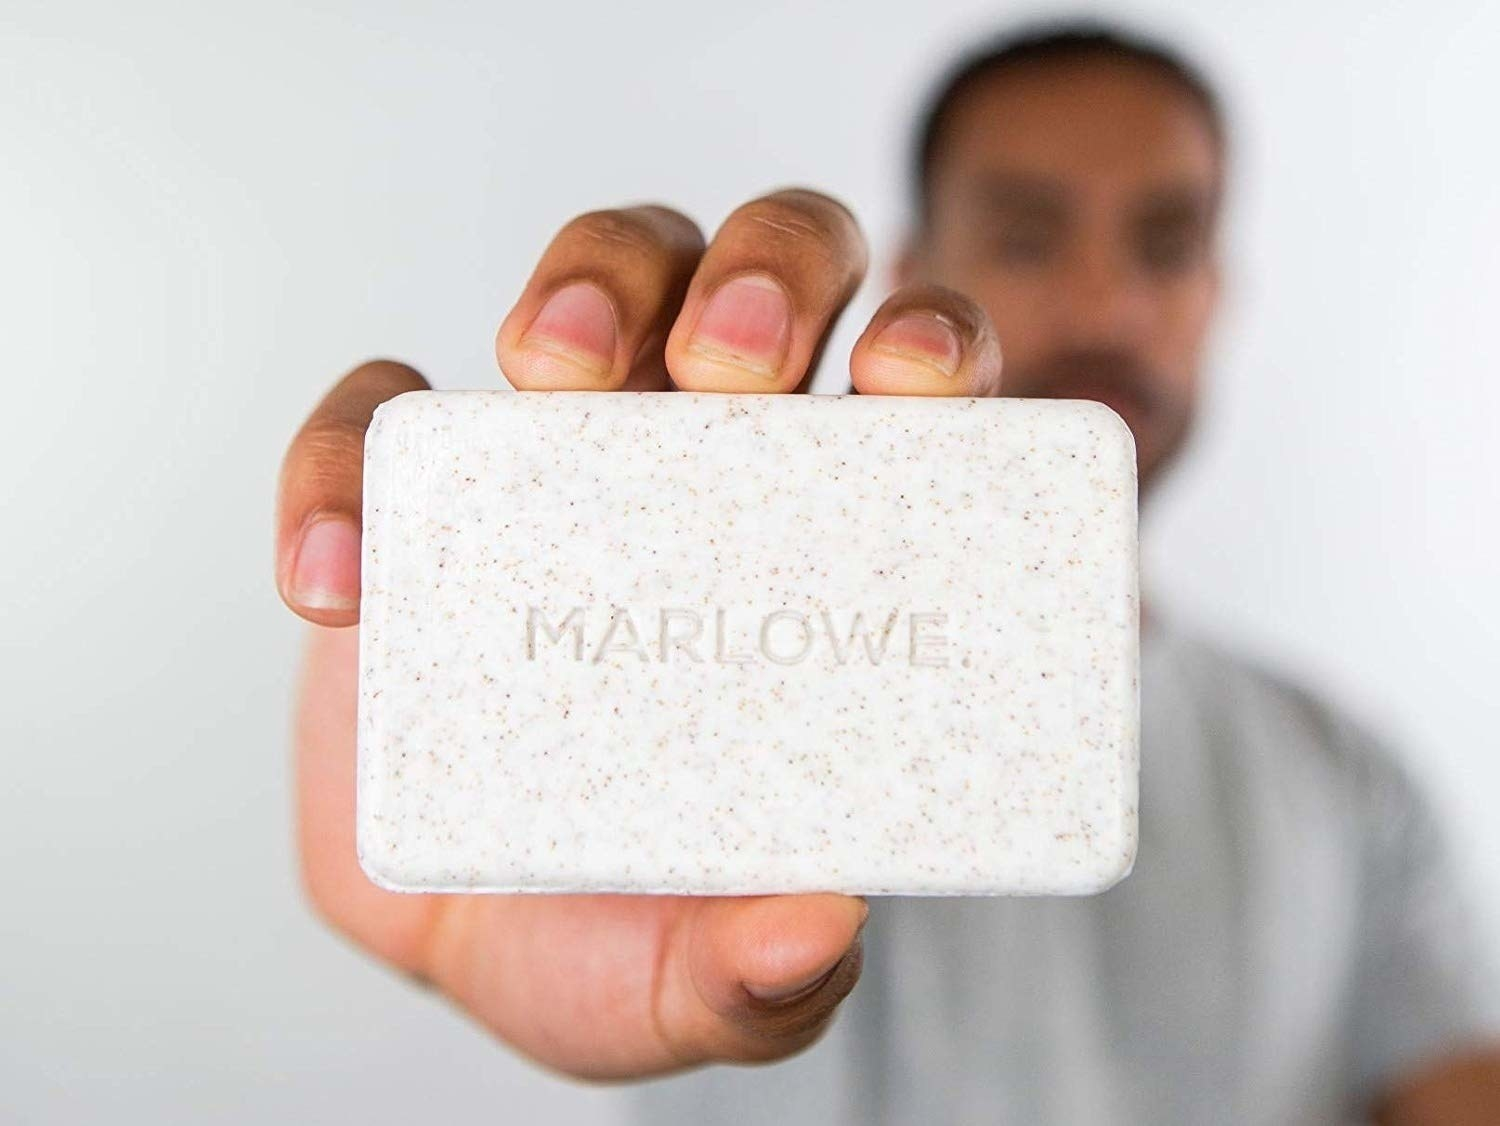 Model holding the soap